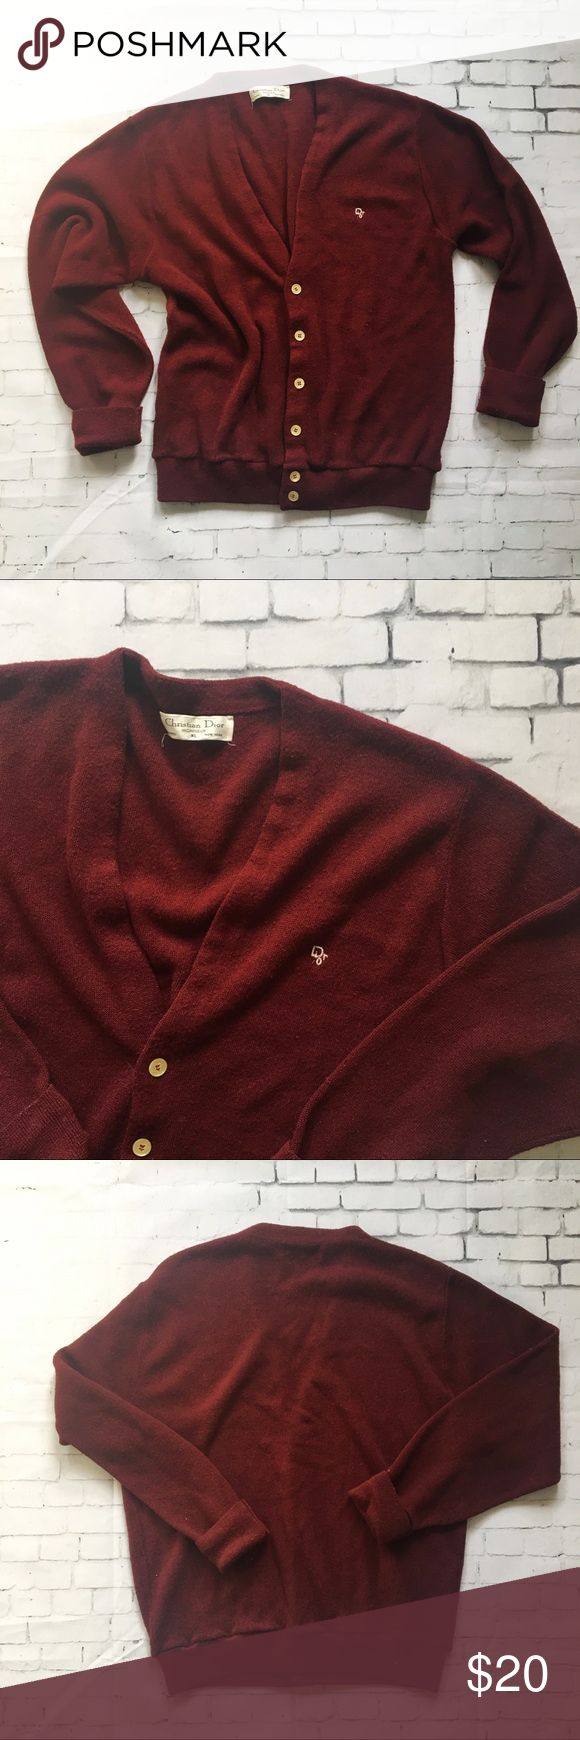 """Christian Dior cardigan sweater Vintage Christian Dior monsieur cardigan sweater In wine red color size XL In good condition made in USA   100% orlon acrylic  -pit to pit : 22""""-  - length 26"""" - Christian Dior Sweaters Cardigan"""